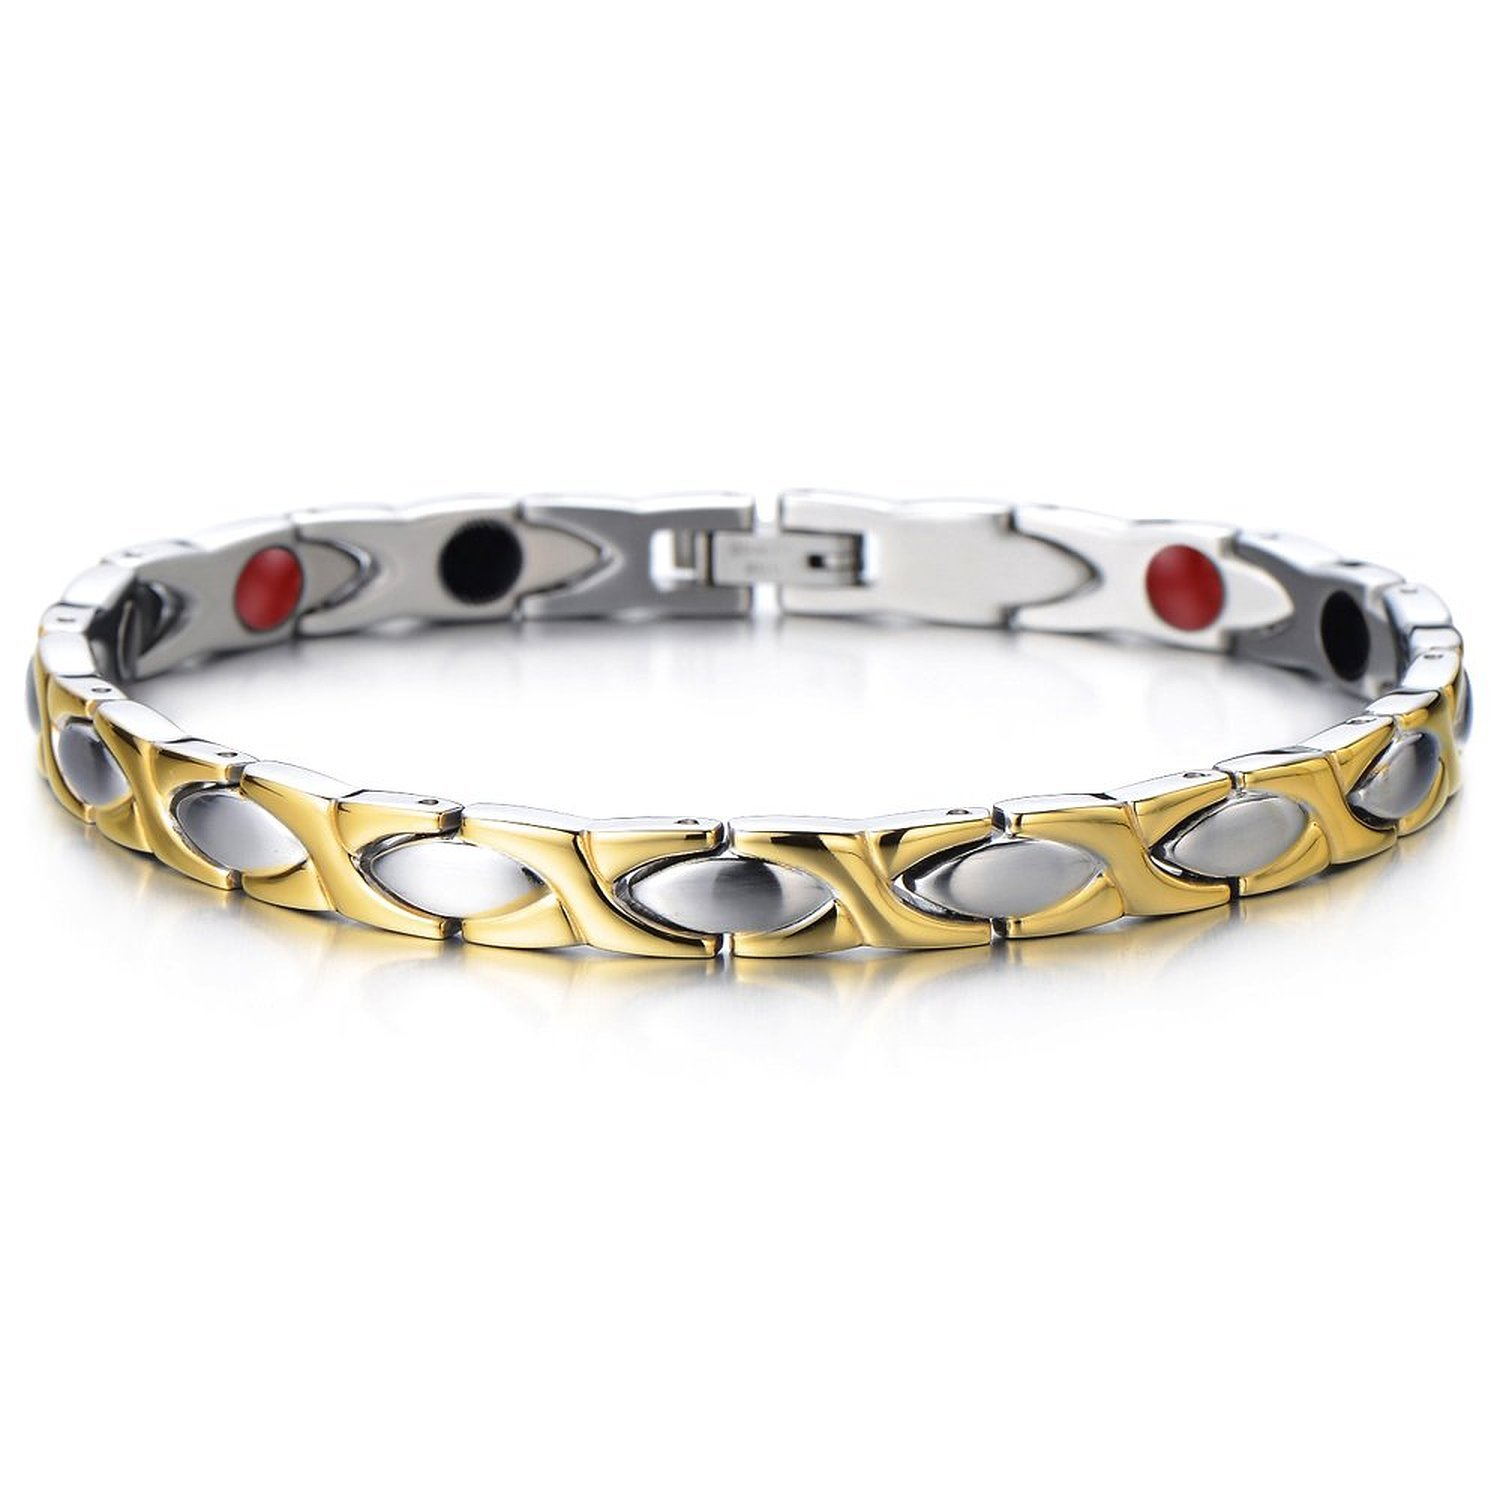 Magnetic Link Bracelet for Women Stainless Steel with Magnets, Germanium, Negative Free Link Removal Kit COOLSTEELANDBEYOND MB-147-CA